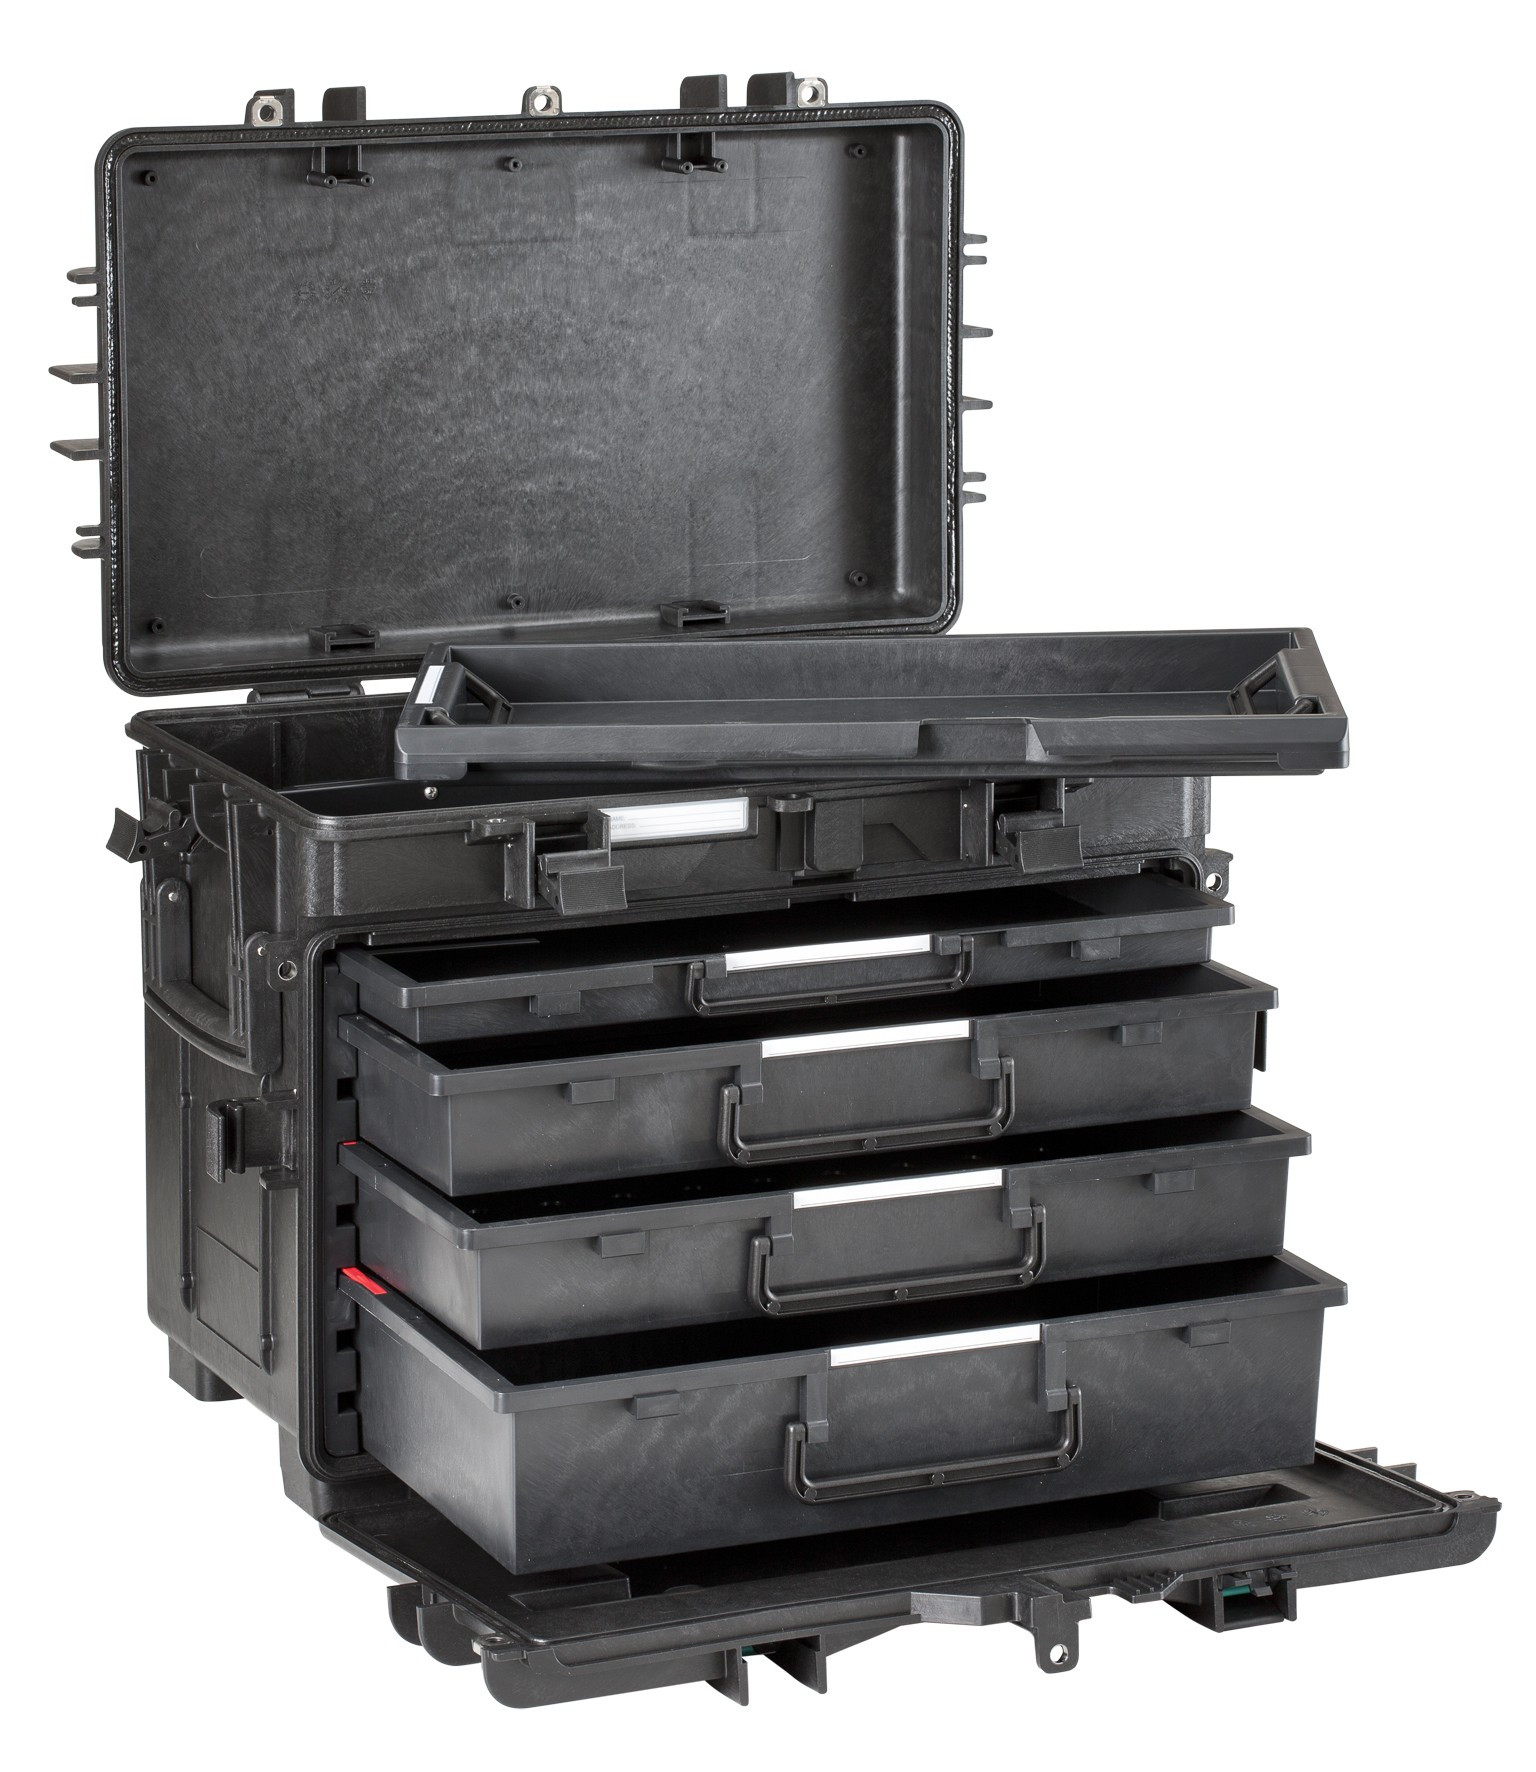 Luggage With Drawers Suitcase Waterproof Explorer Case 5140kt02 Ah With Drawers Hpa Sarl